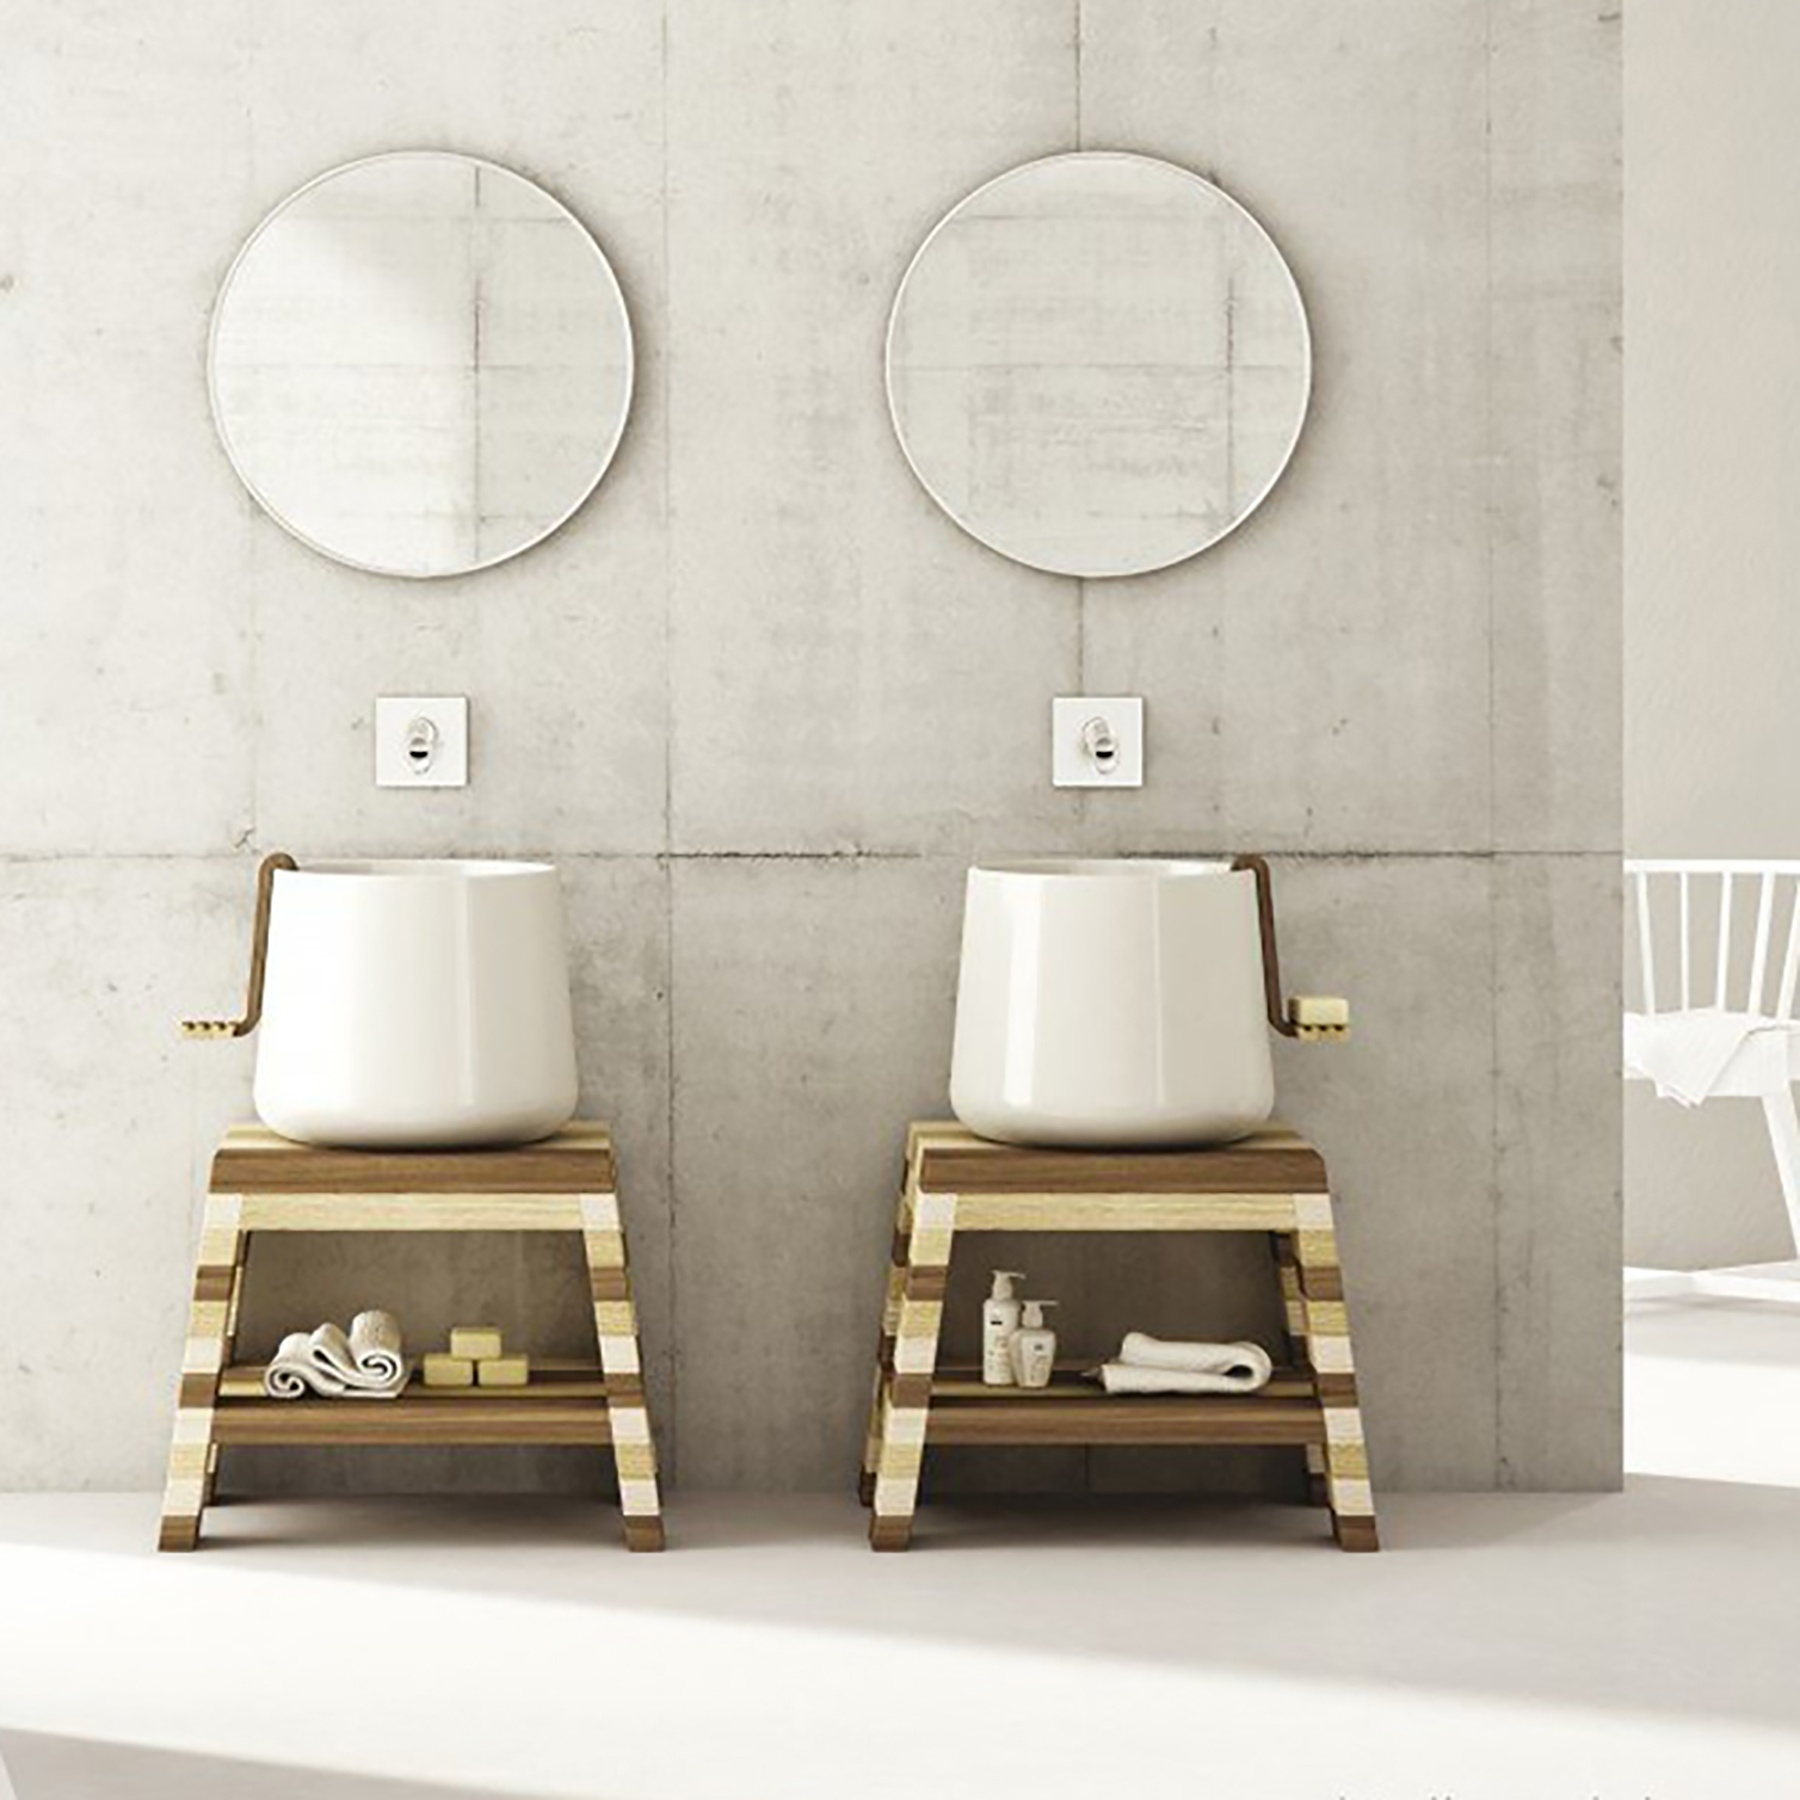 catino_bathroom_collection_by_emanuele_pangrazi